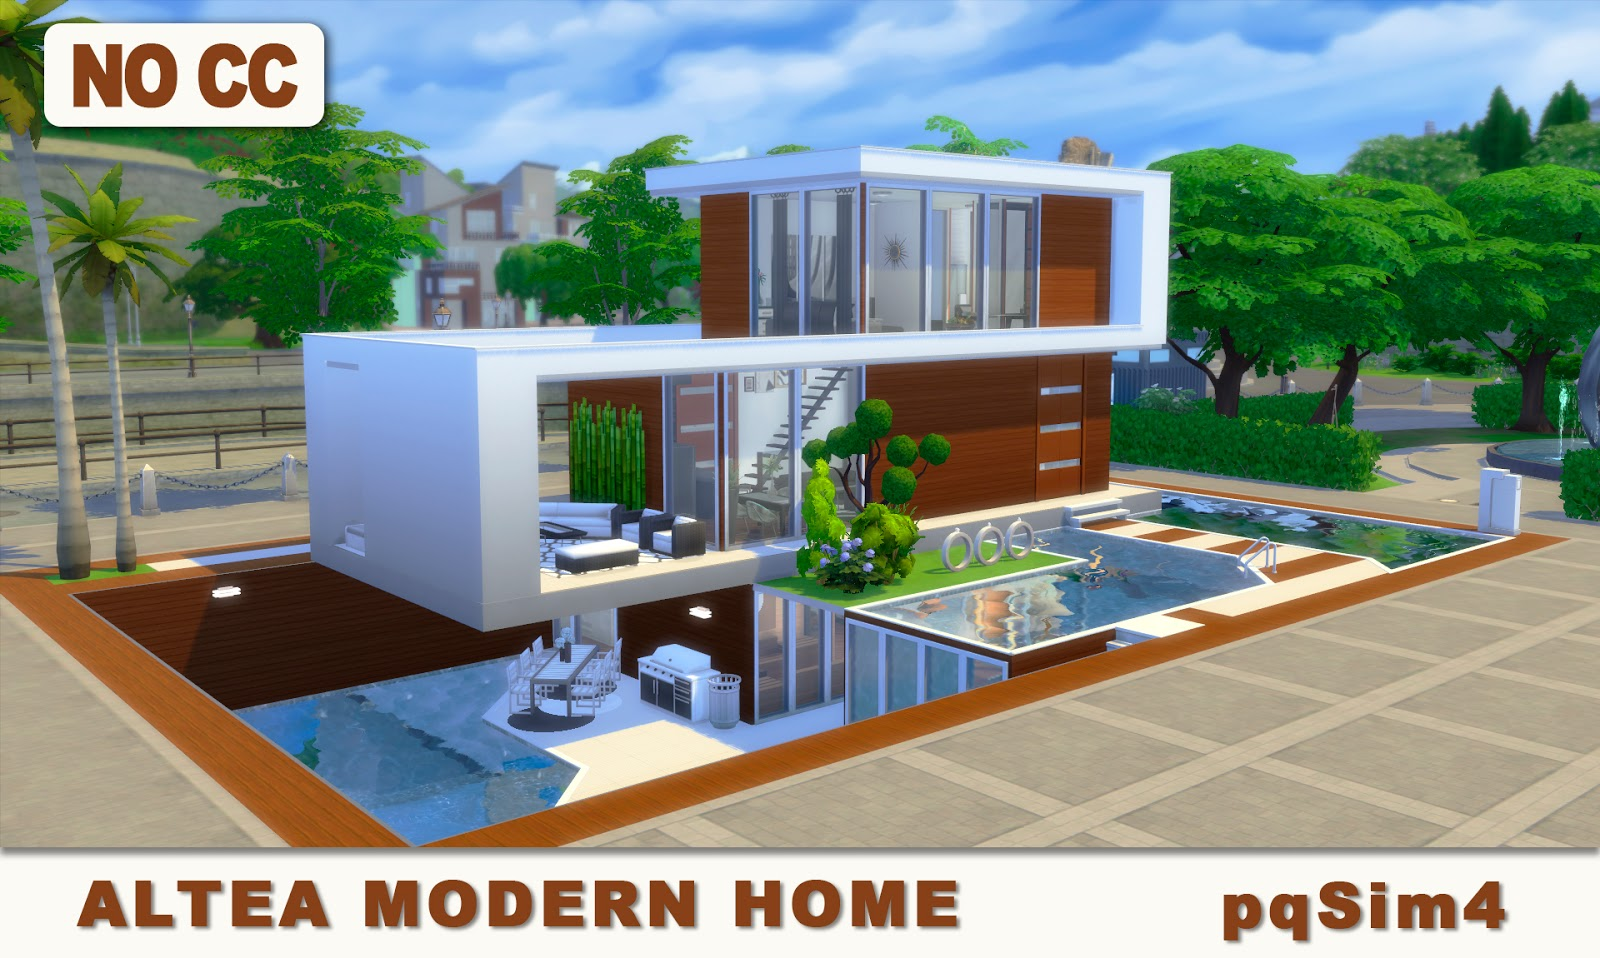 Altea modern home sims 4 speed build and download Casas modernas sims 4 paso a paso